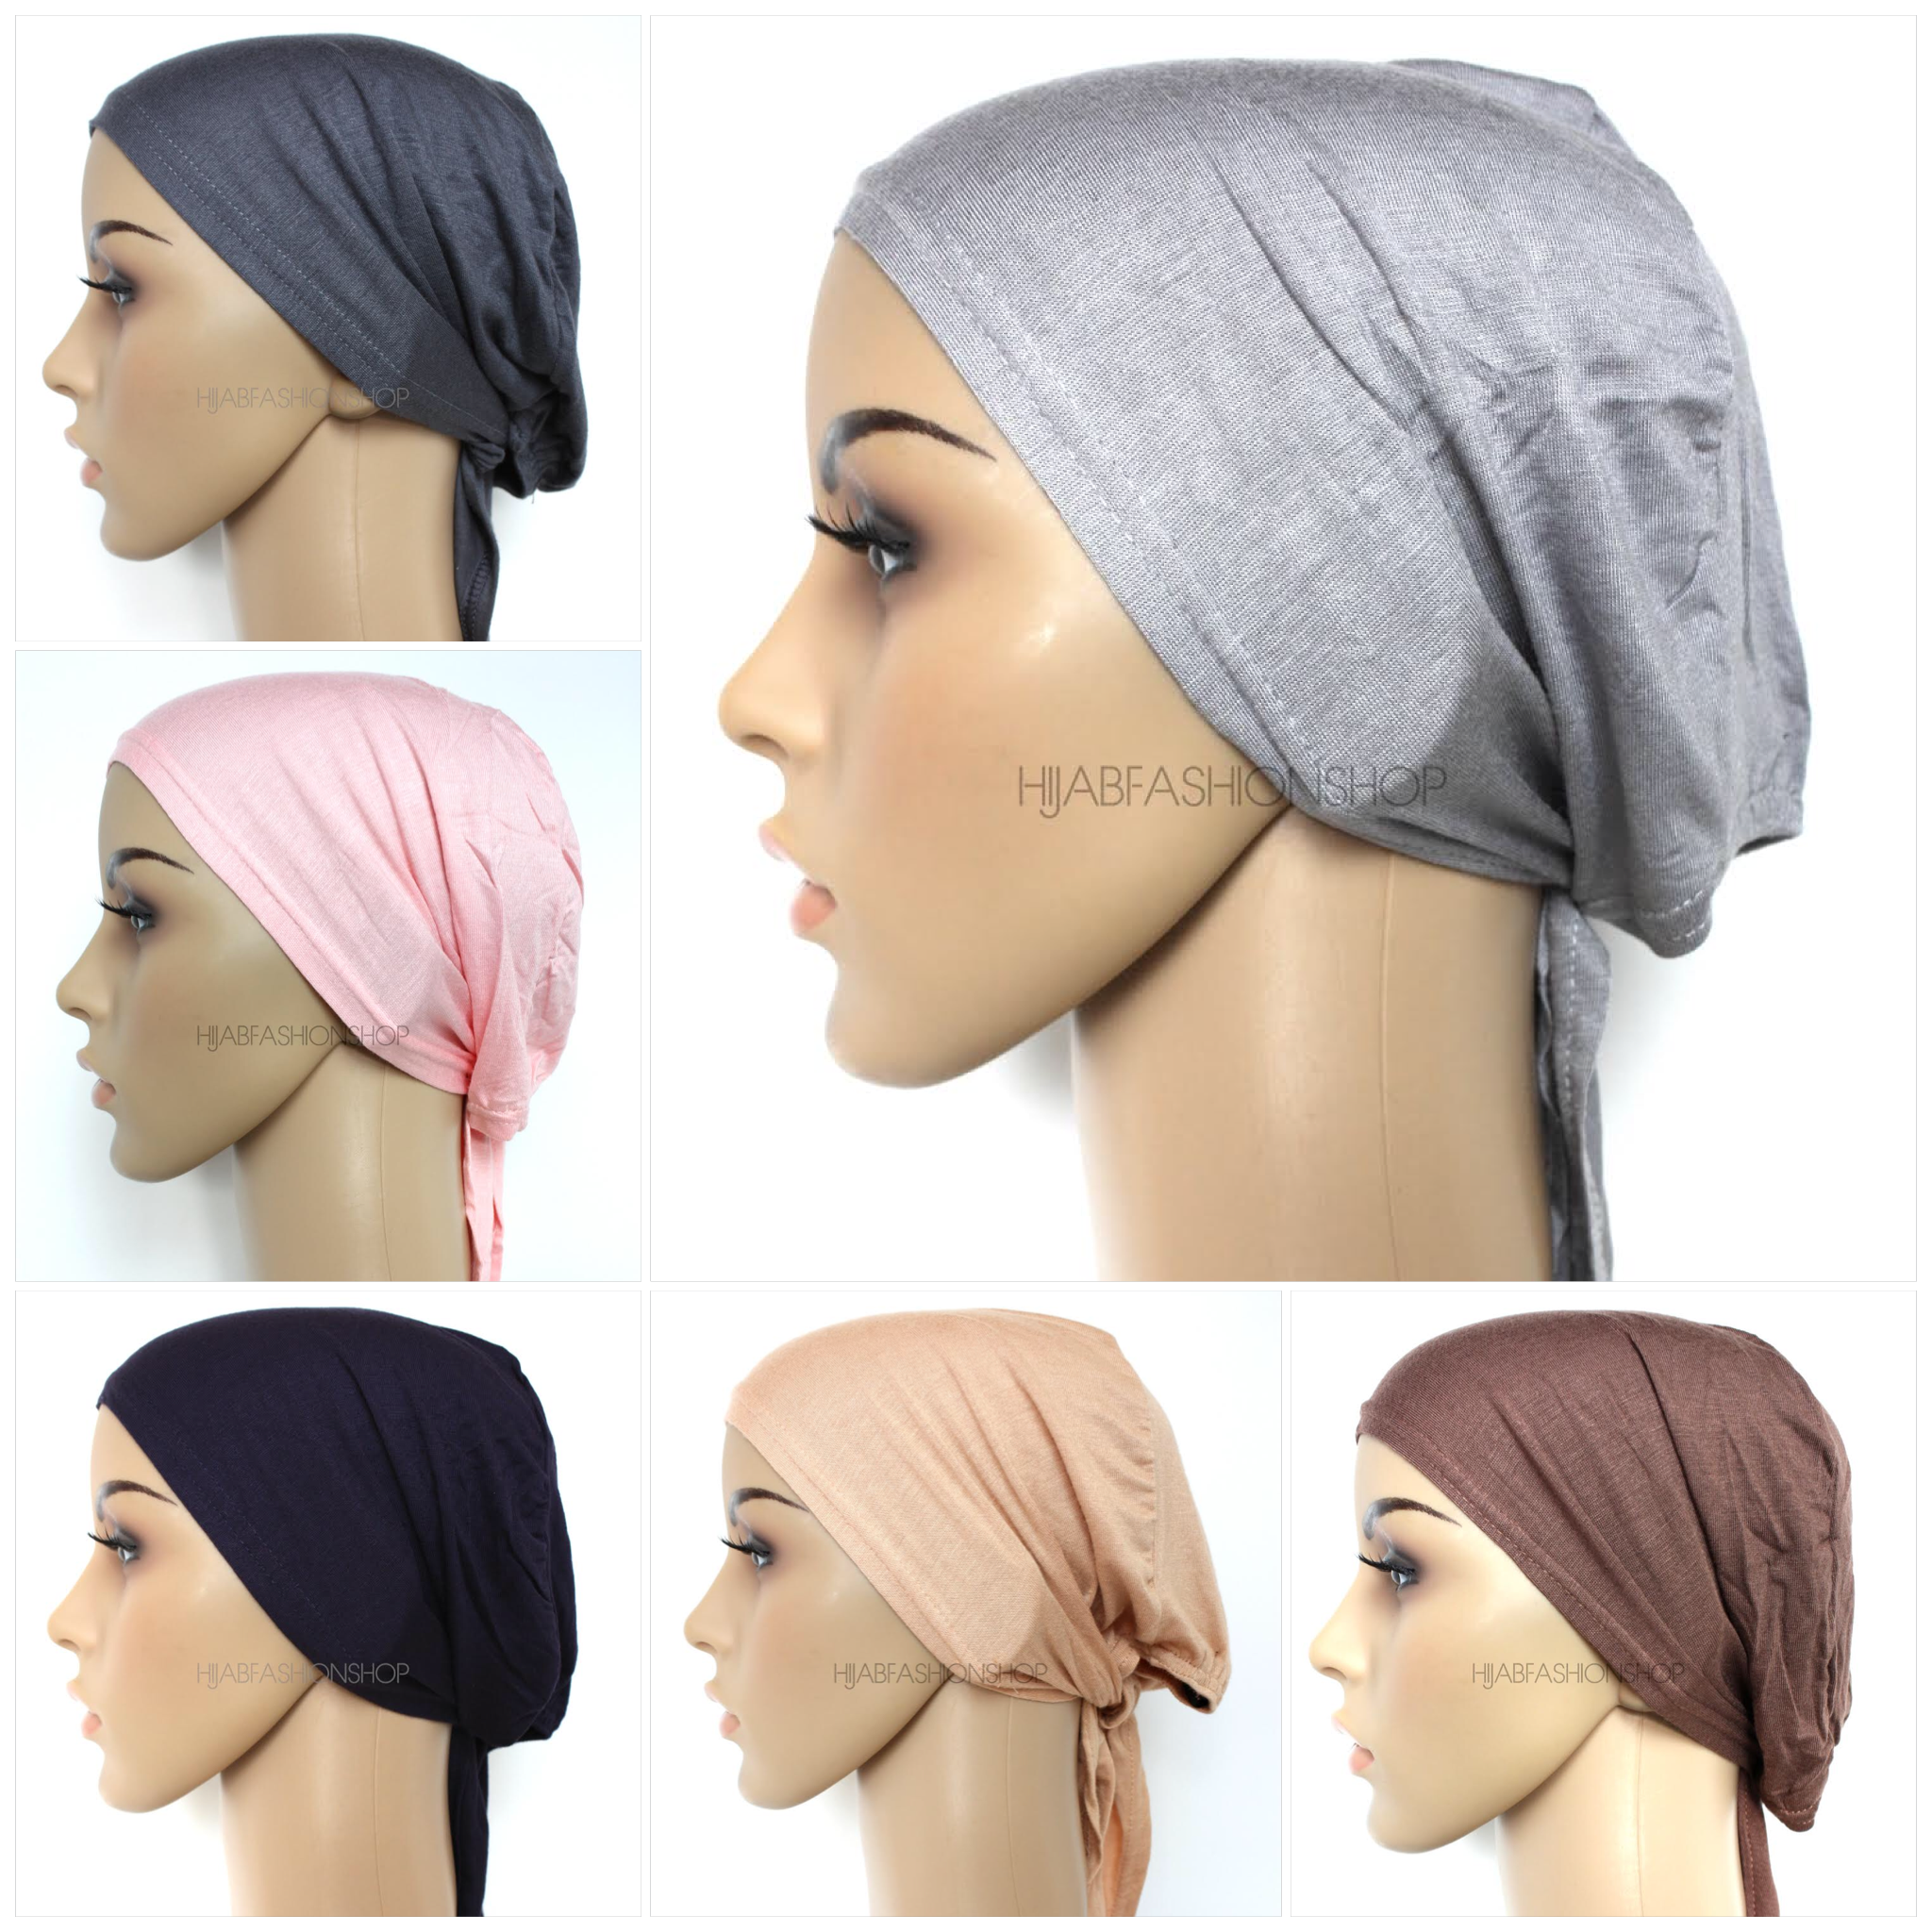 Six hijab caps